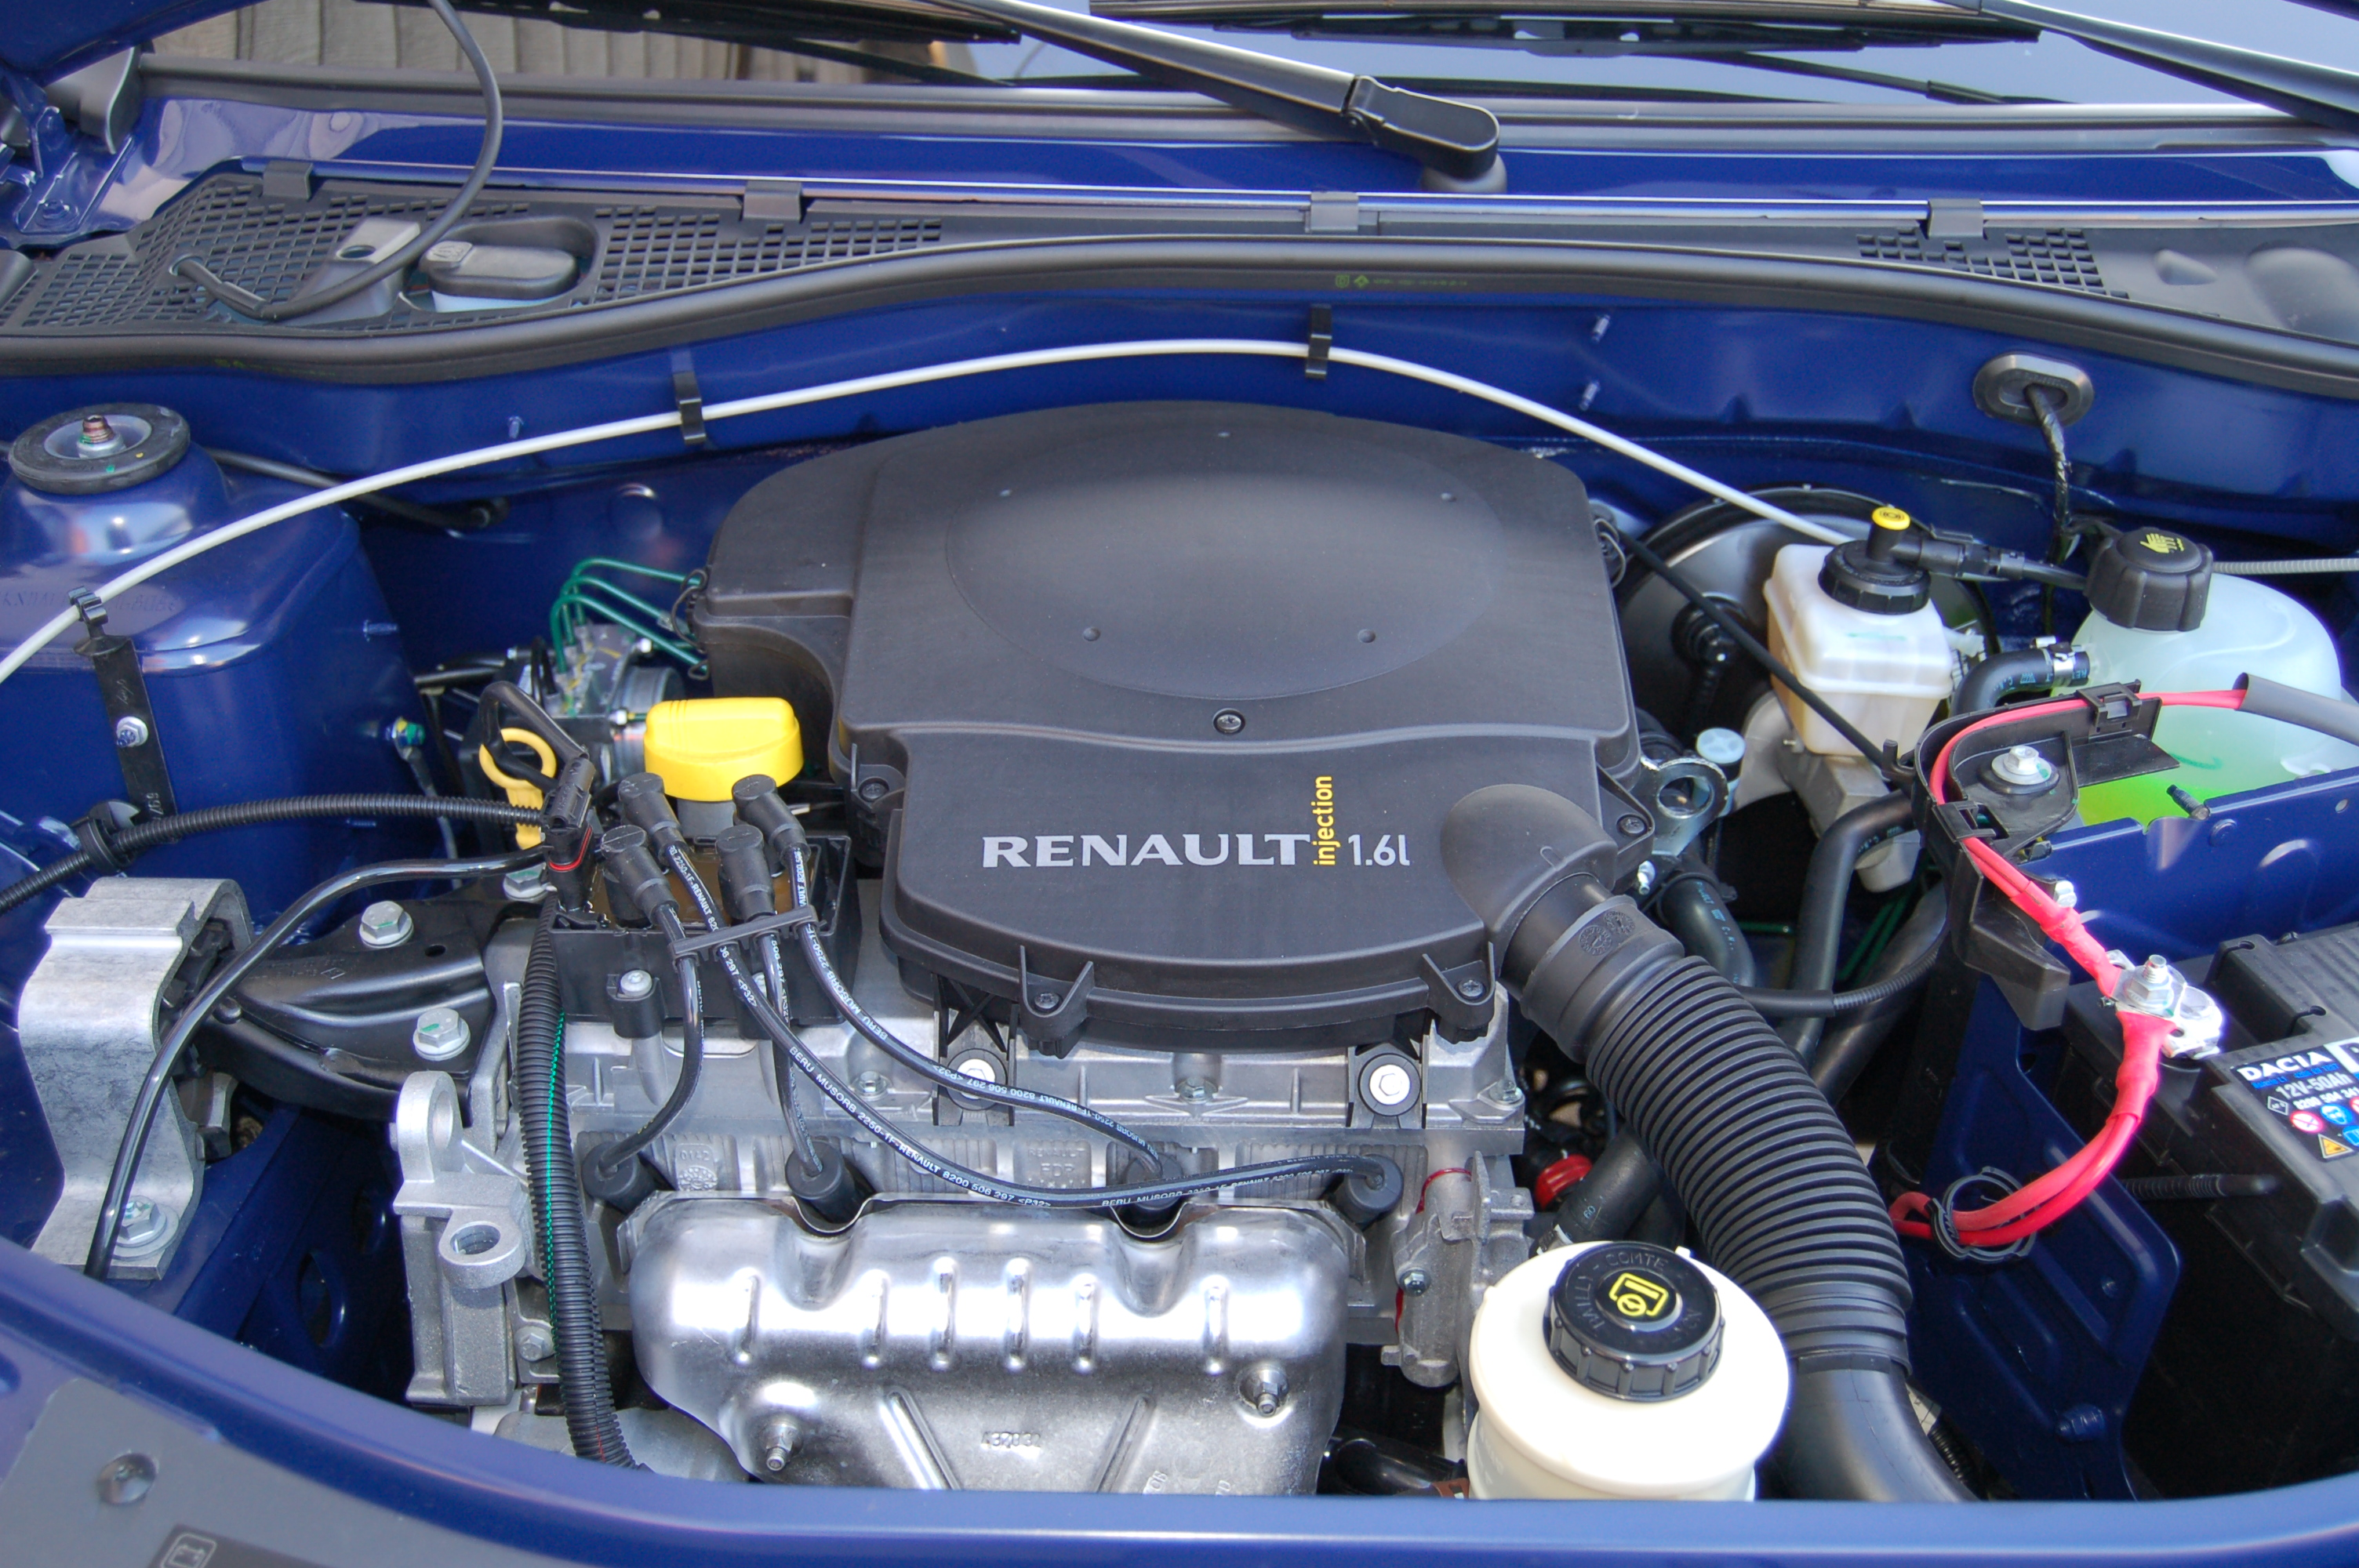 Renault K Type Engine Wikipedia Nissan Juke Fuel Filter Location